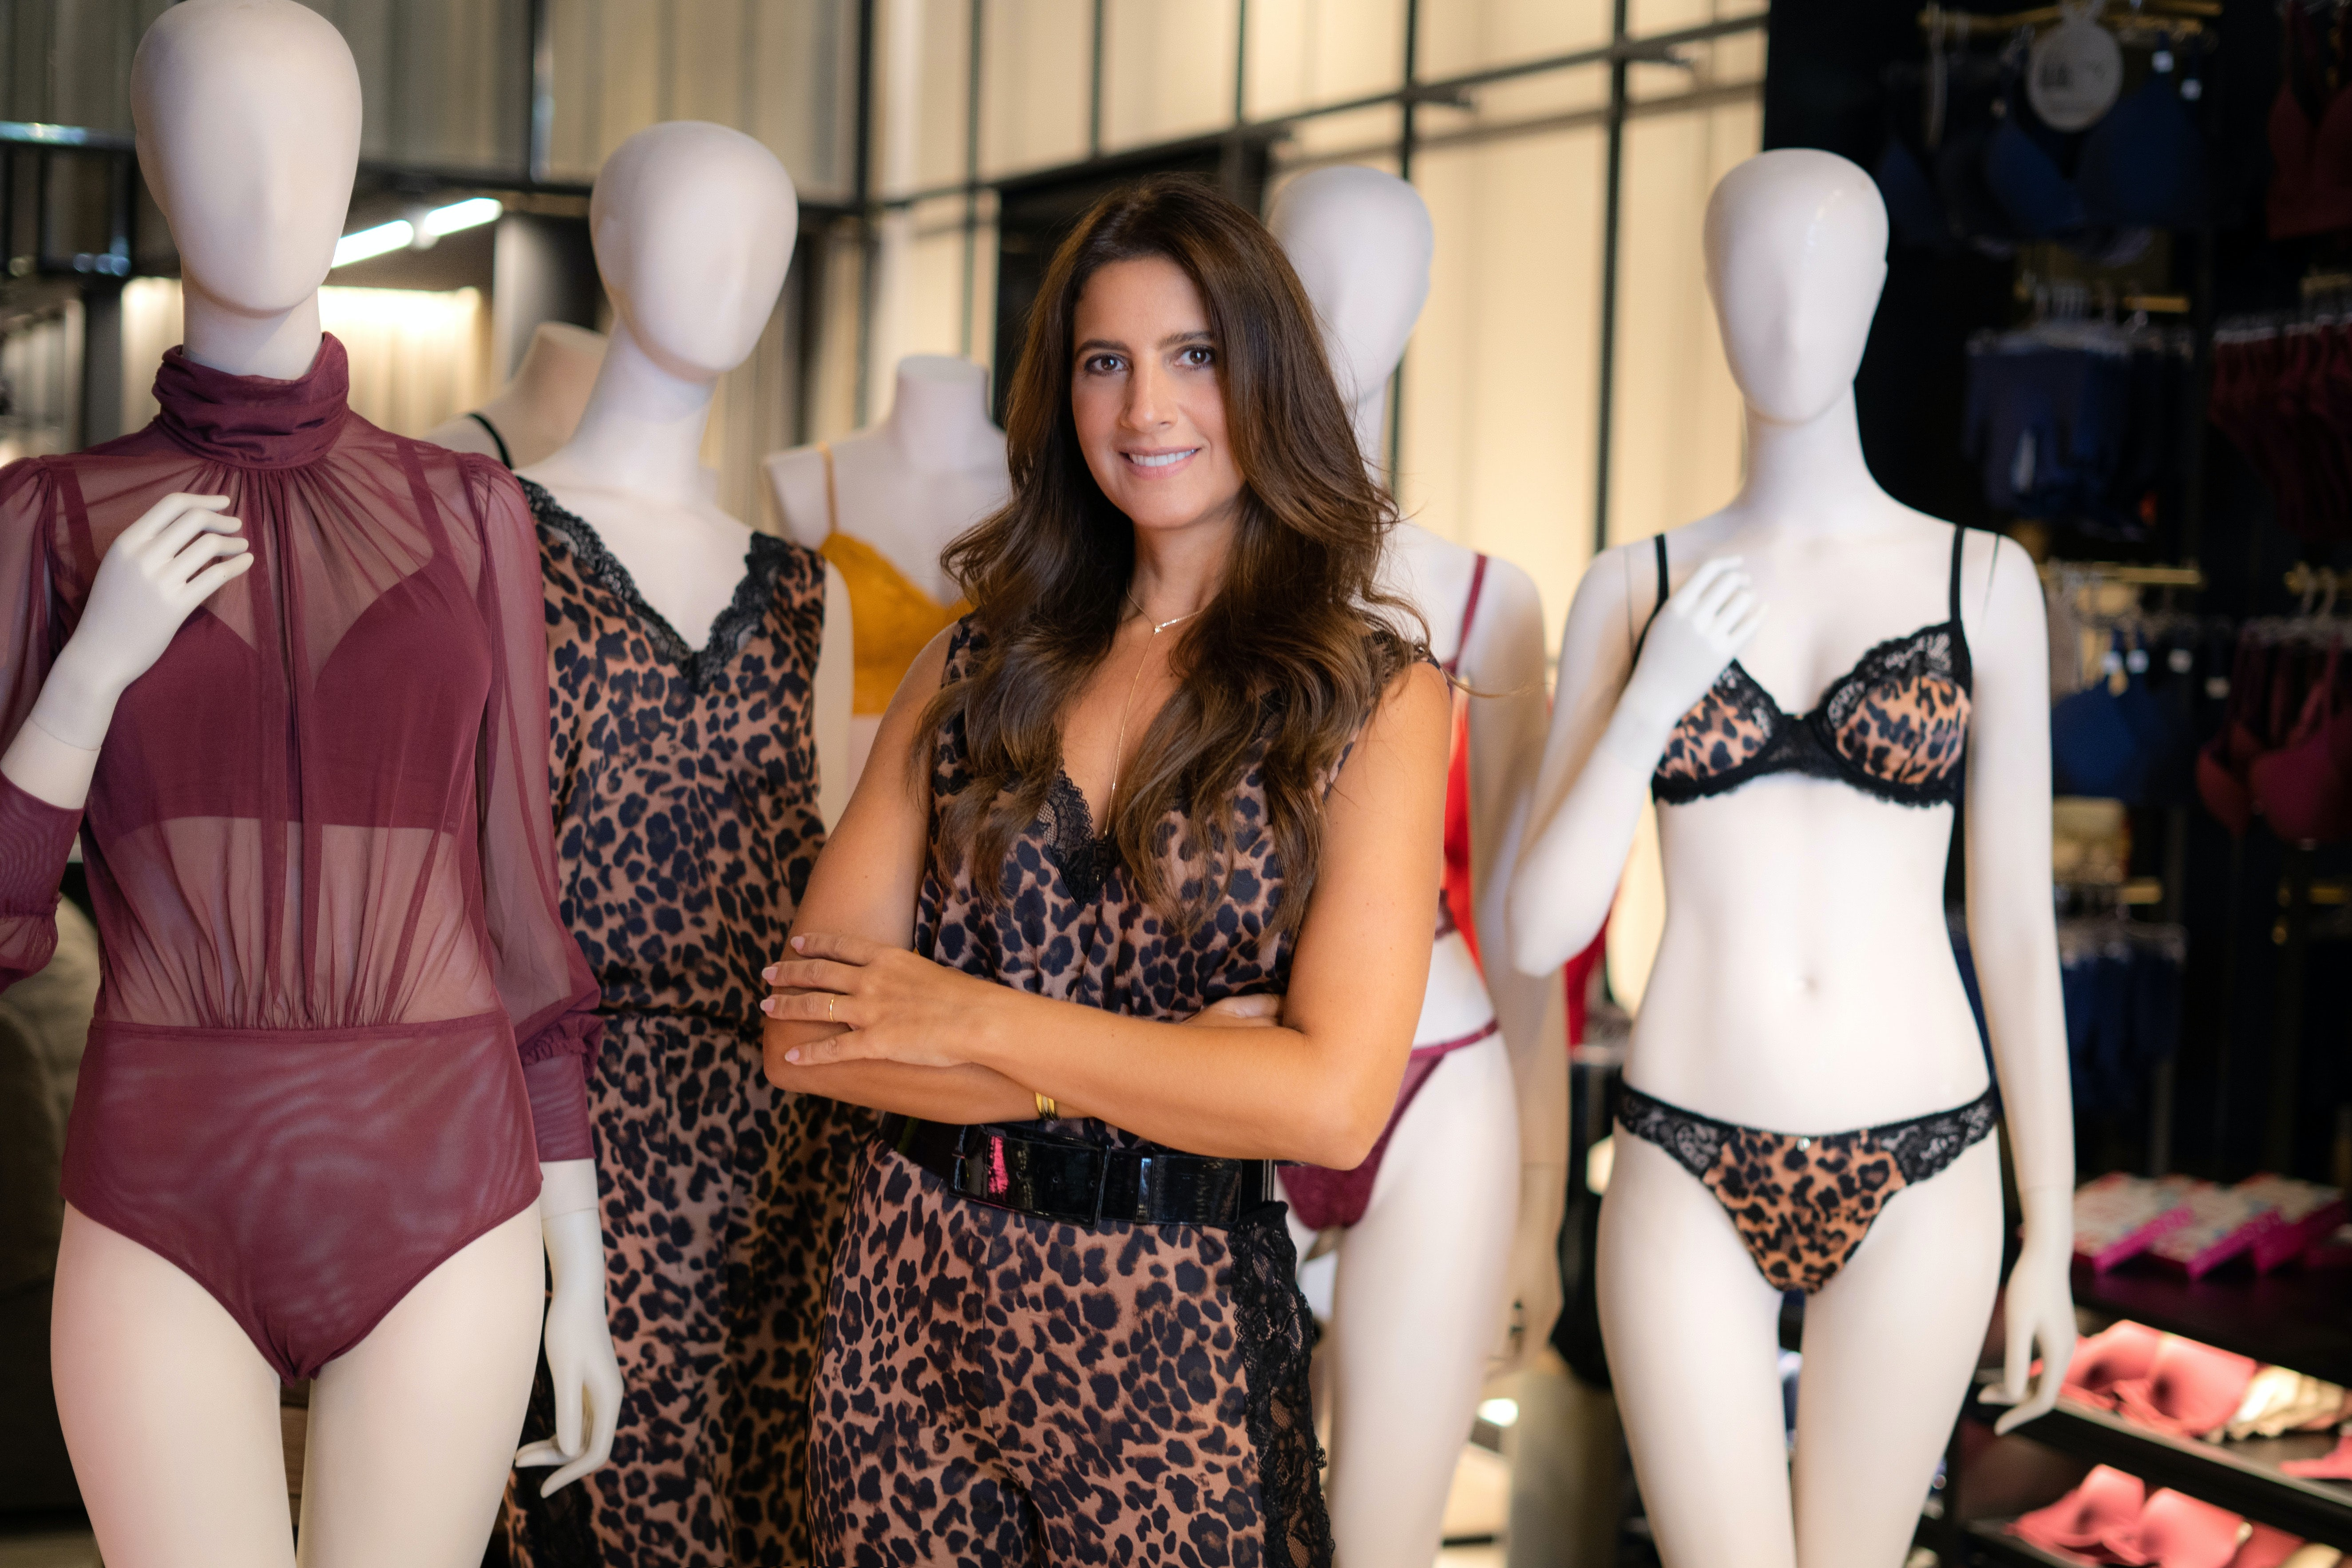 Sandra Chayo, CEO of Hope lingerie in Brazil. Courtesy.